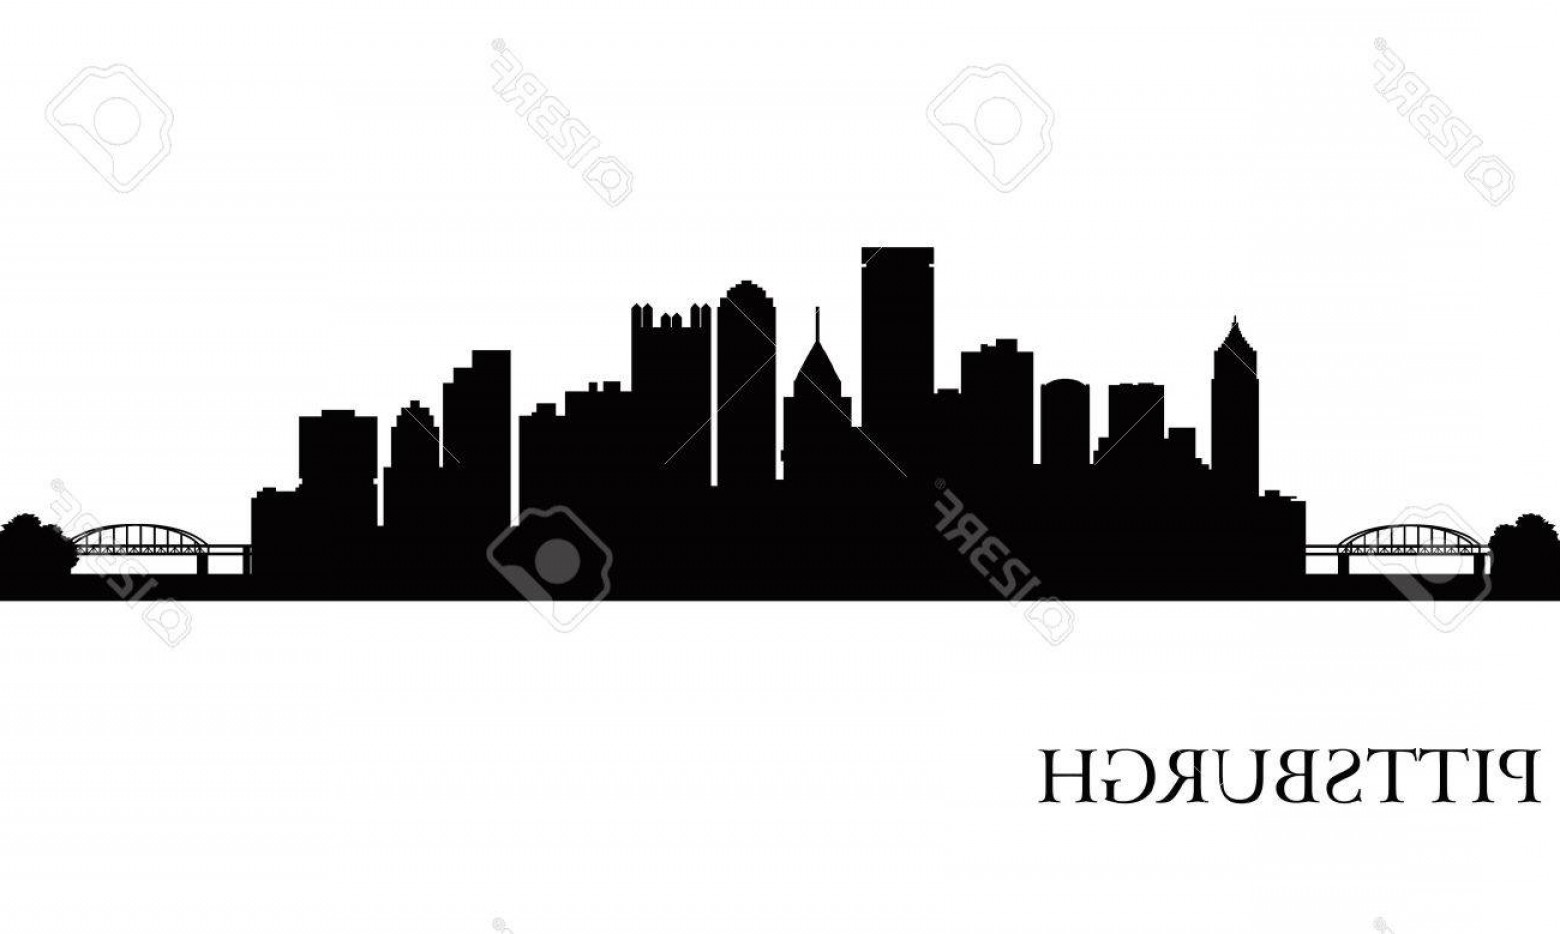 Pittsburgh City Skyline Vector: Photopittsburgh City Skyline Silhouette Background Vector Illustration